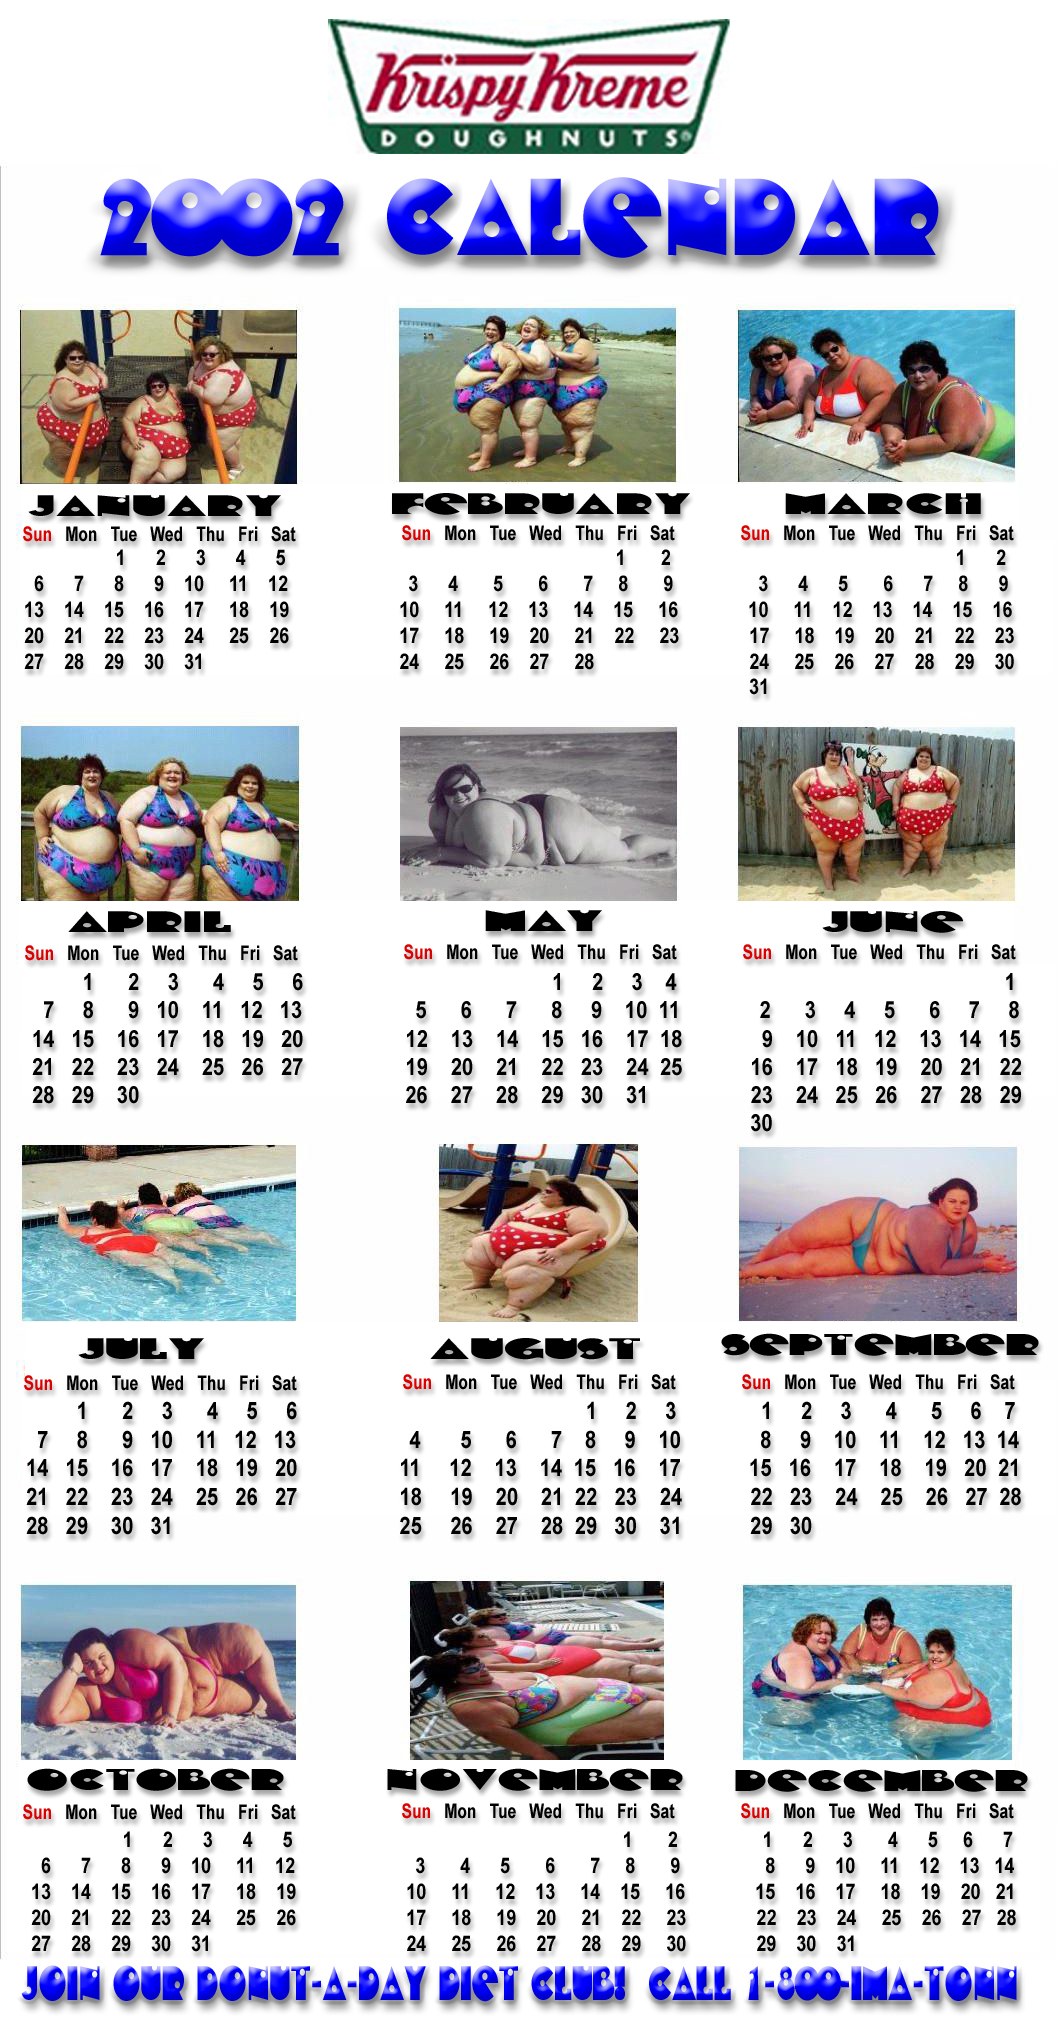 Krispy Kreme Calendar.Swimsuit Whaler Photos On Motorboating Com Moderated Discussion Areas